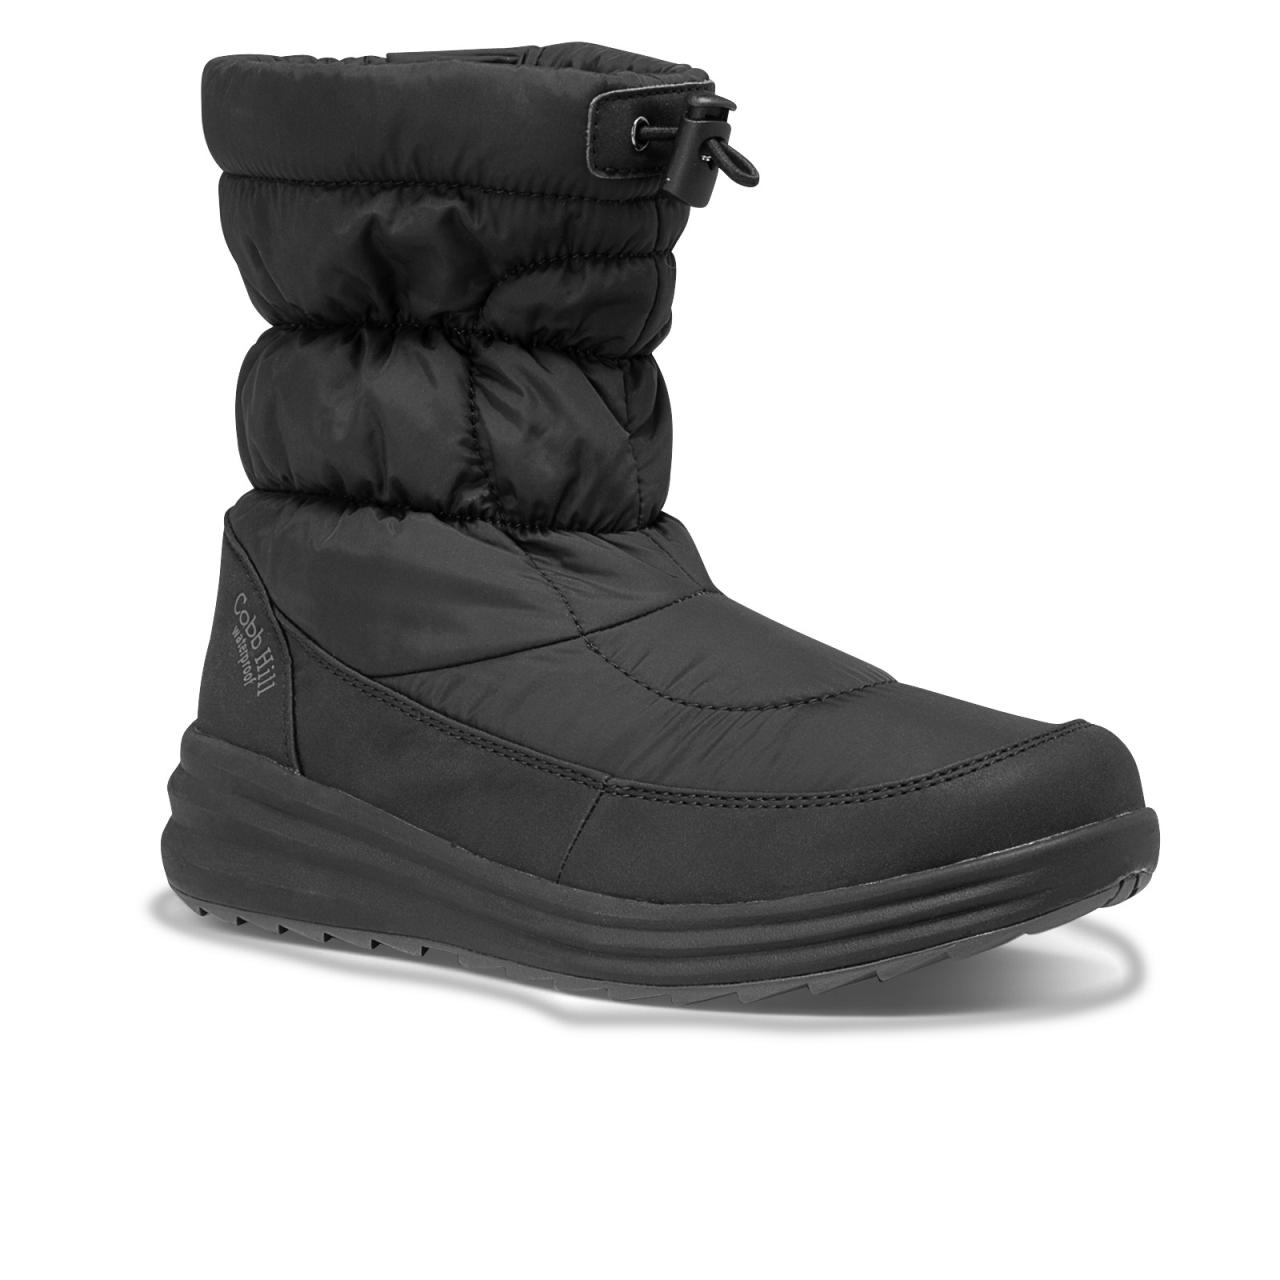 Cobb Hill Brandy - Women's Snow Boots - Free Shipping